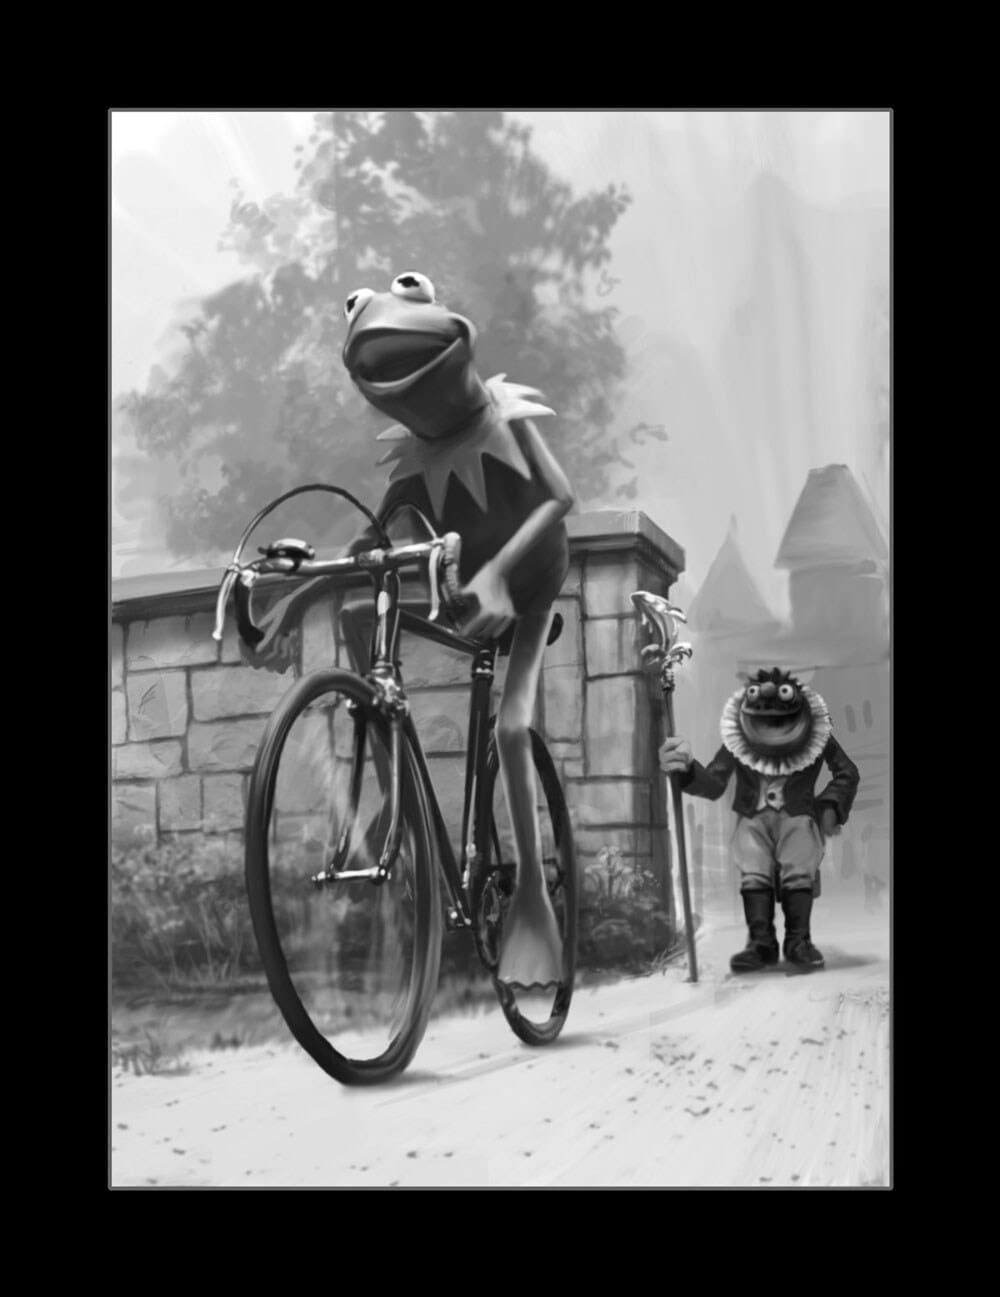 Black and white illustration of Kermit the Frog and Lew Zealand